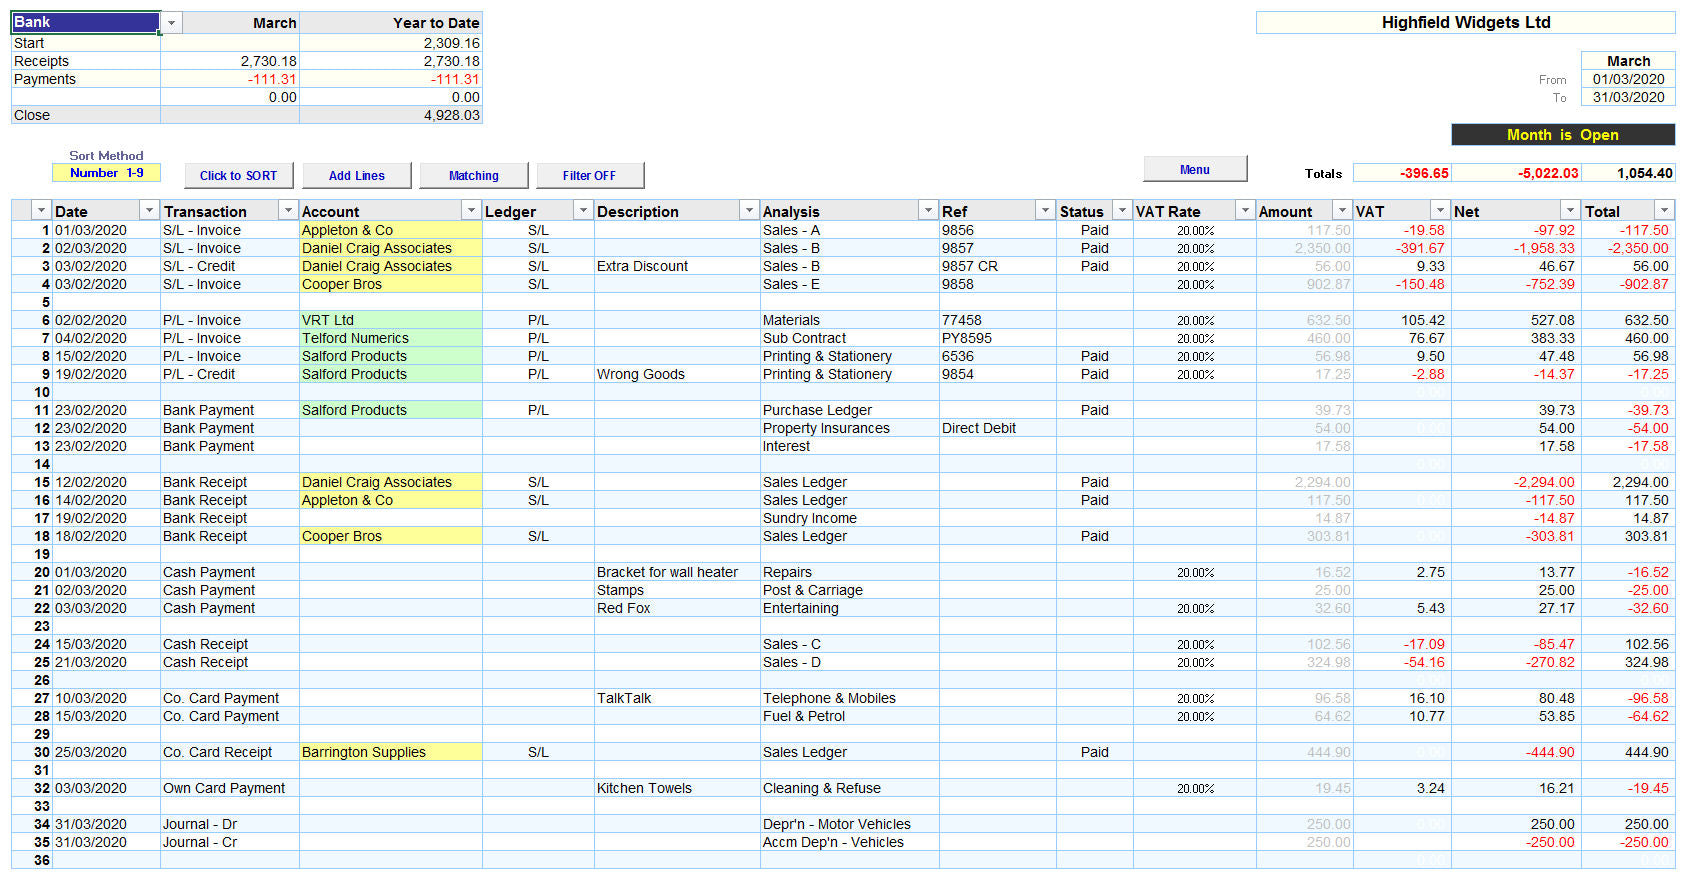 Excel Accounting Spreadsheet Template for a small business